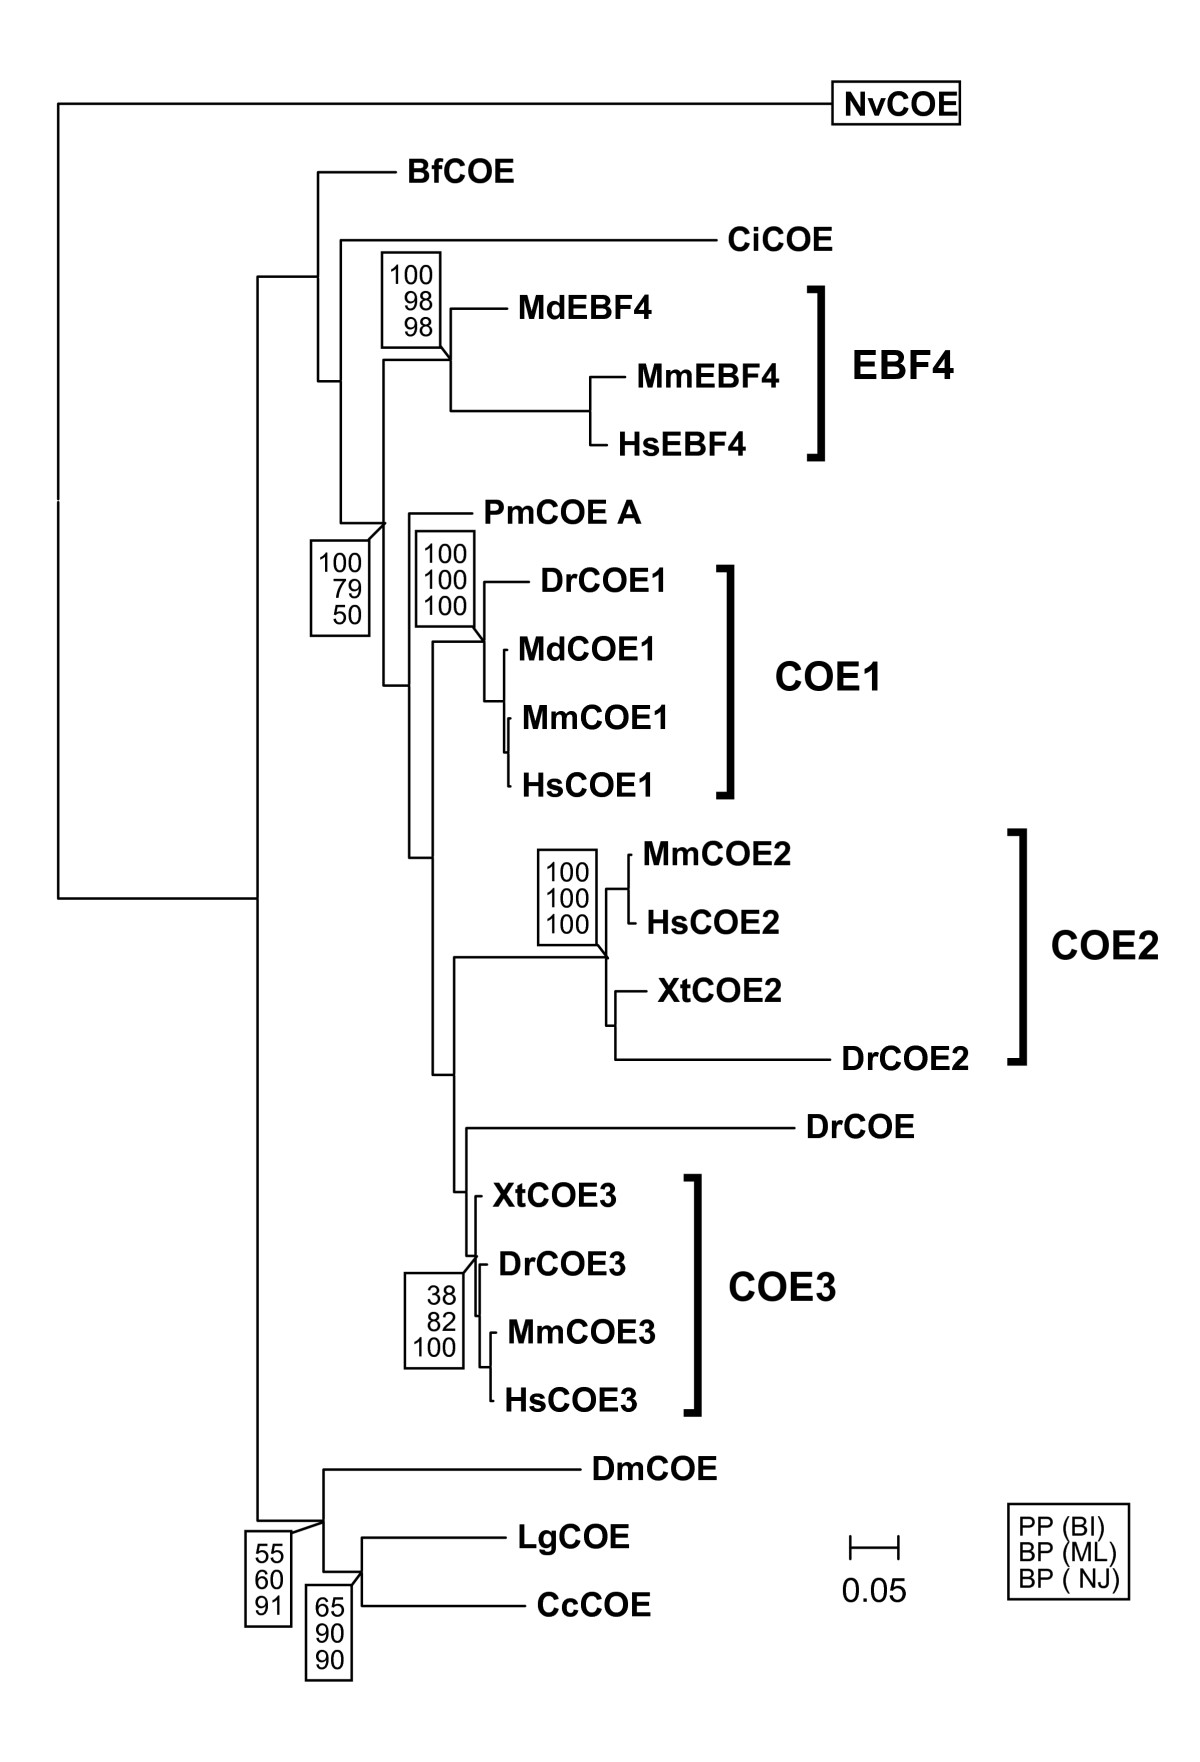 https://static-content.springer.com/image/art%3A10.1186%2F1471-2148-8-131/MediaObjects/12862_2008_Article_700_Fig1_HTML.jpg